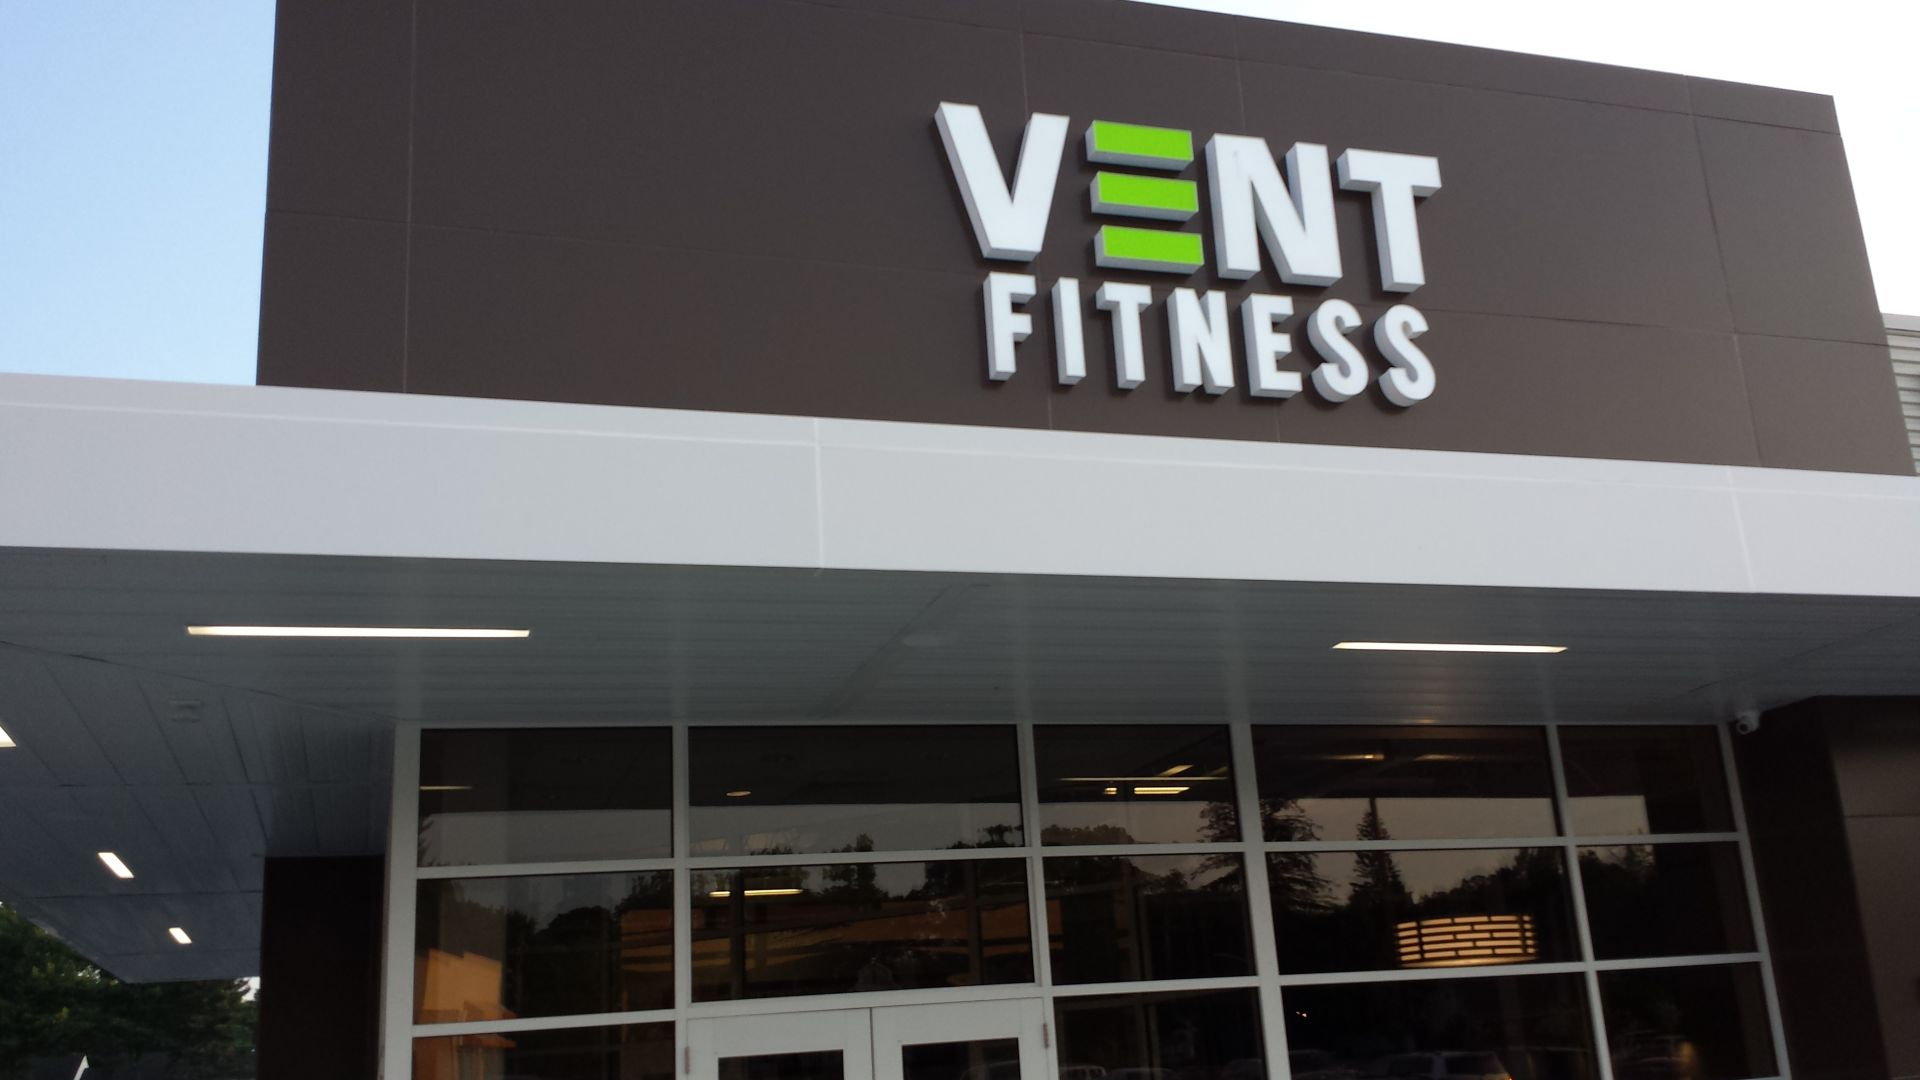 Sneak peek vent fitness guilderland derryx